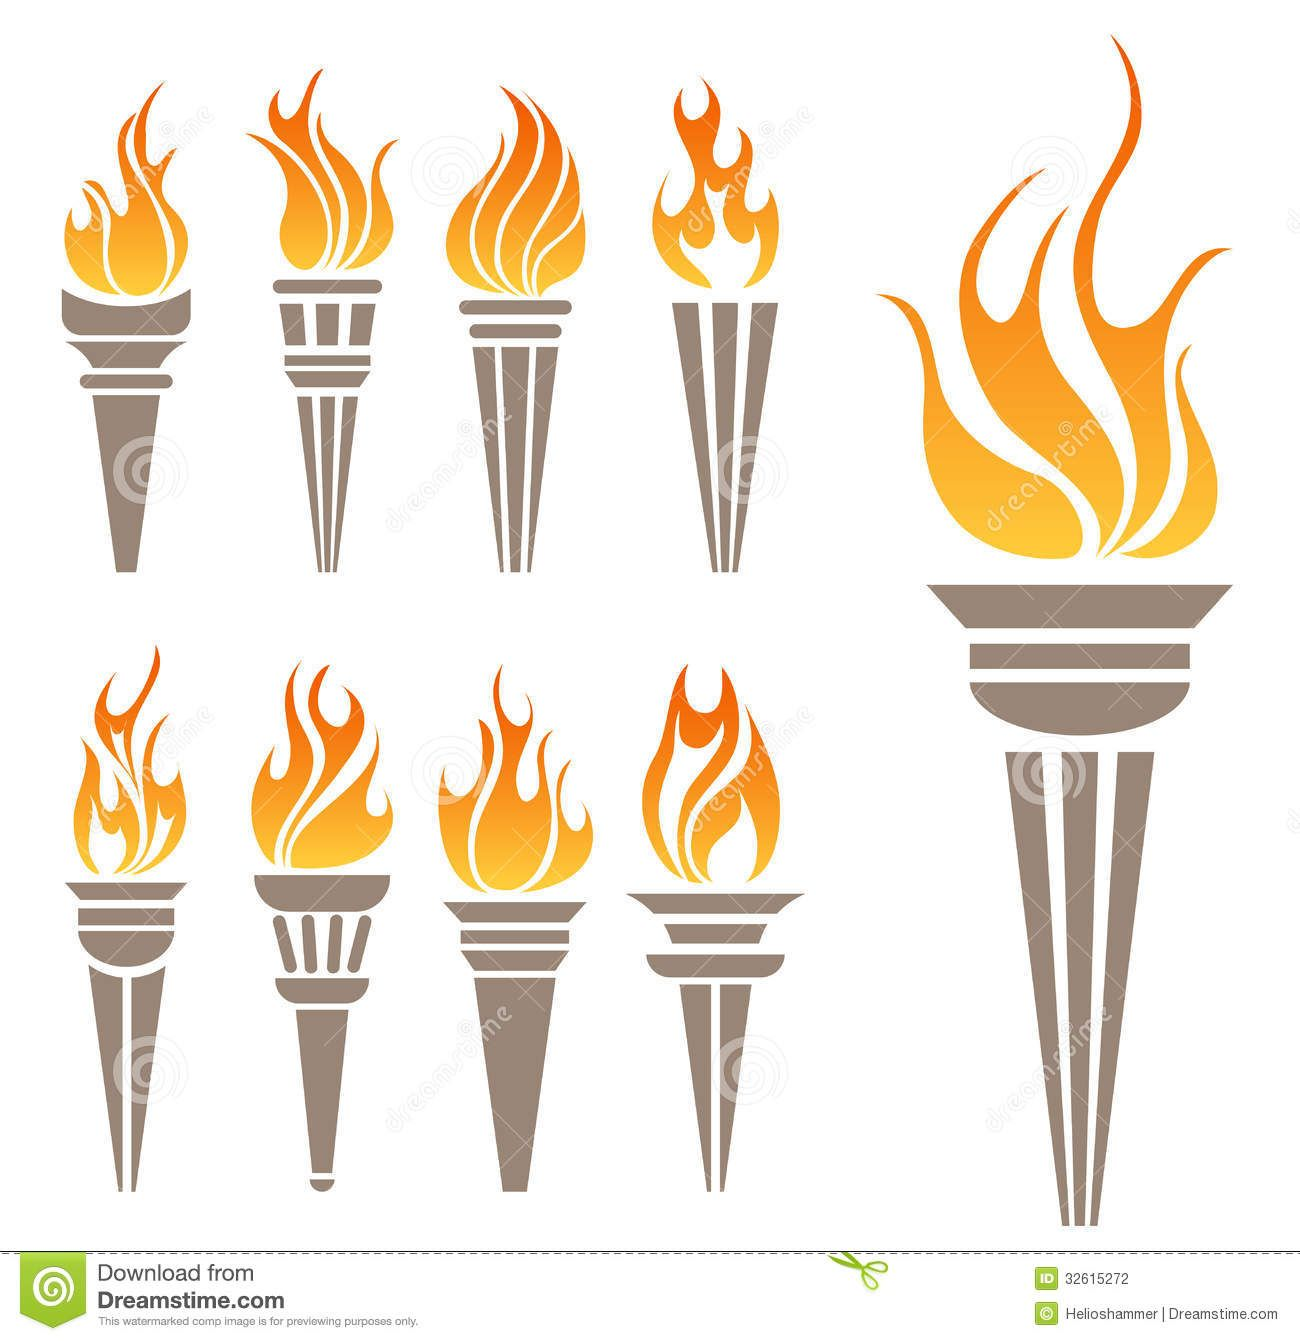 Symbol Torch Stock Vector - Image: 40040673 | Fire ...